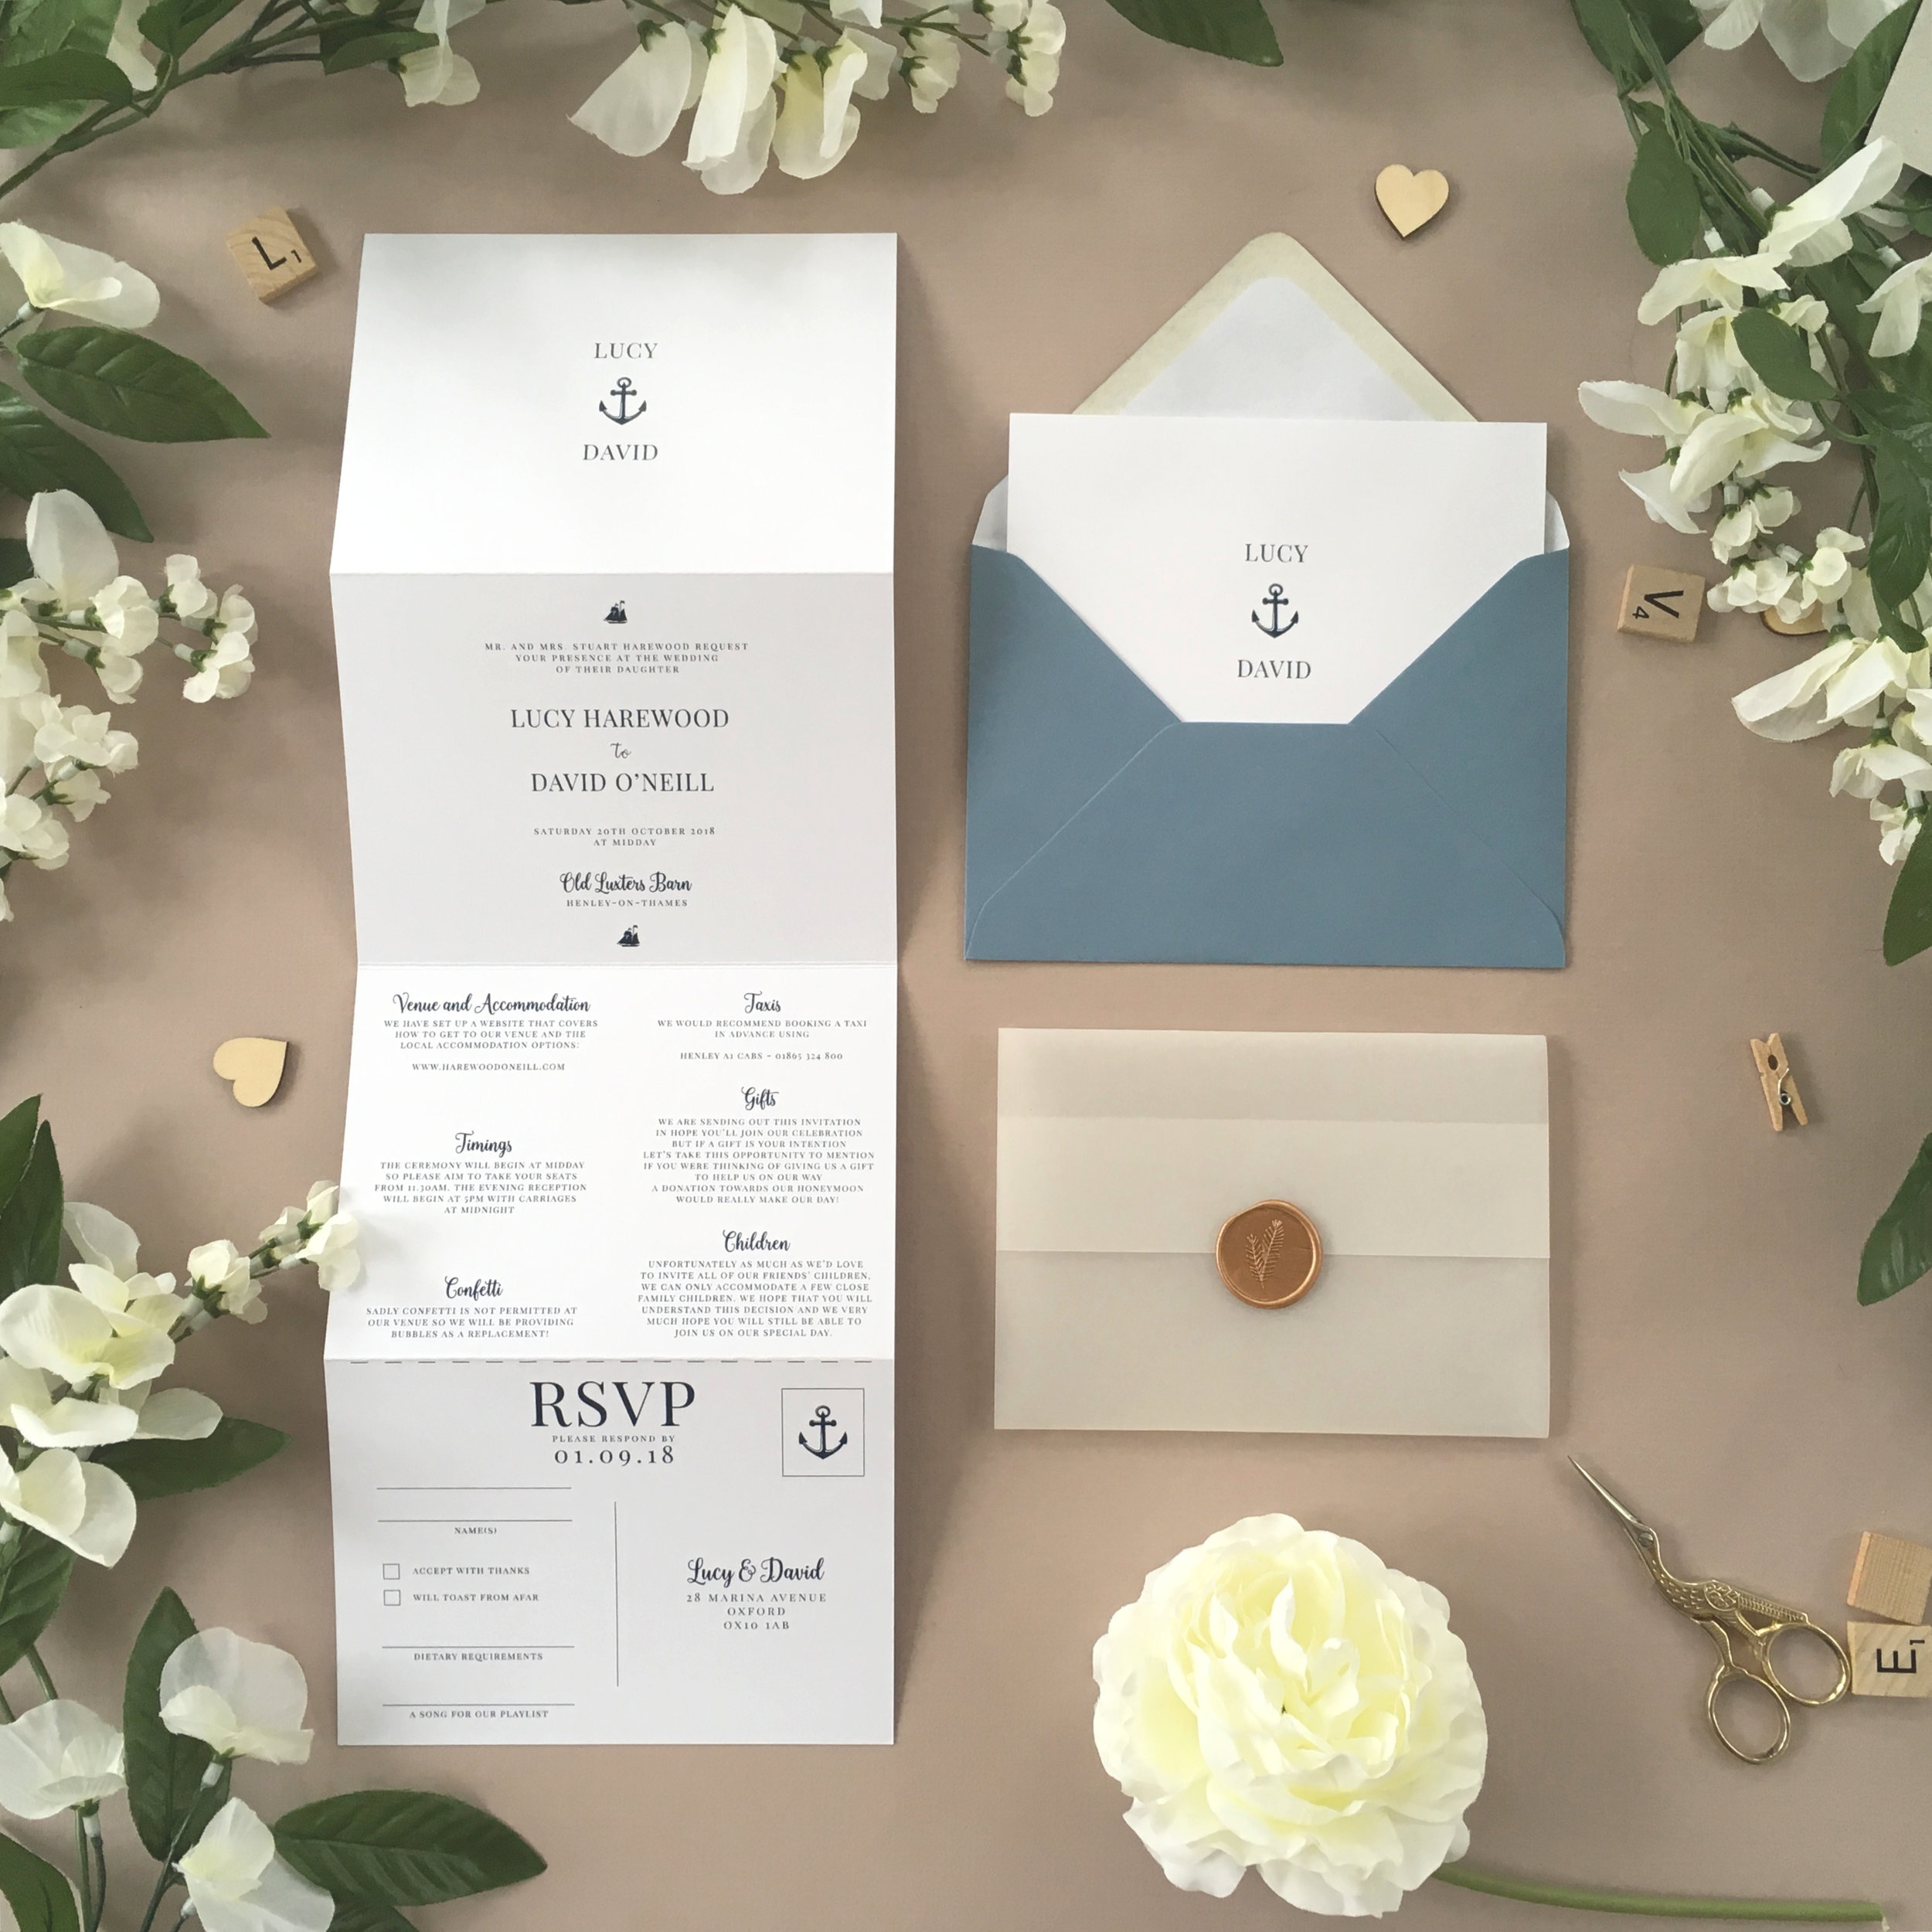 Canary Wharf - Classically-styled with nautical themes, our Canary Wharf collection is perfect for those having a sea-themed wedding.Our concertina invitations are a great all-in-one solution, with a detachable RSVP at the bottom of the invitation - all guests need to do is fill in their details, put a stamp in the corner and post!Concertina invitations can be provided on an as-is basis, or can be provided bound with a vellum jacket and timeless wax seal, or tied with ribbon or twine for a lovely hand-finished approach.- Concertina Invitation - from £1.95- Ribbon or Twine - £0.40- Vellum Jacket - £0.40- Wax Seal - £0.85 (Custom engraving also available)White envelope provided as standard with coloured upgrade available.